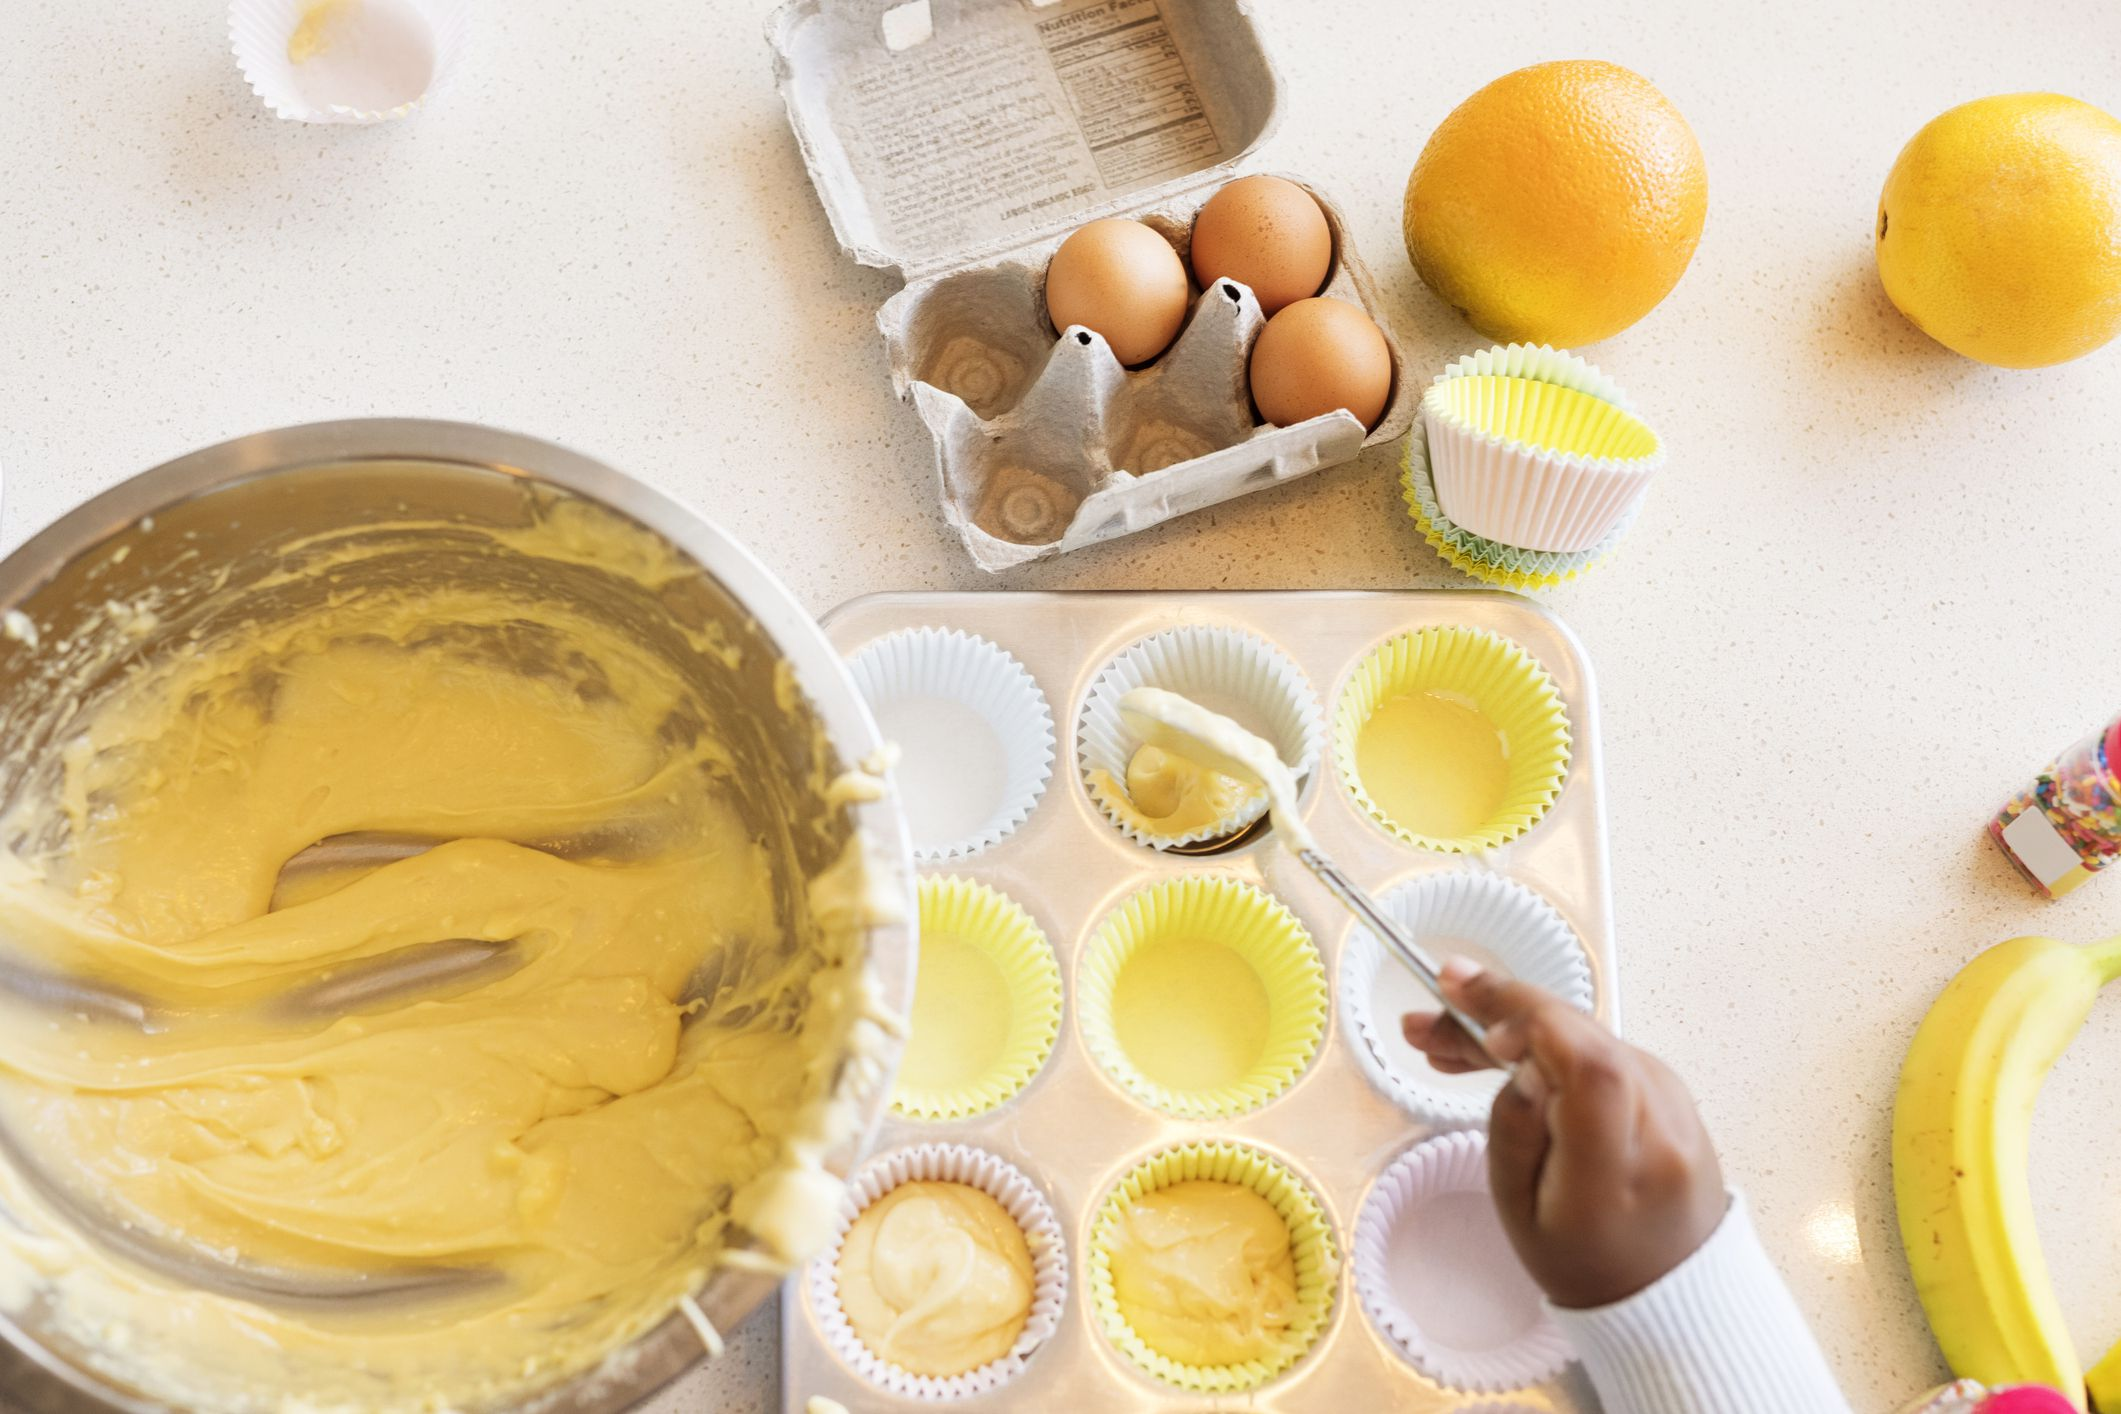 No Cake Flour at Home? Here's How to Make Your Own